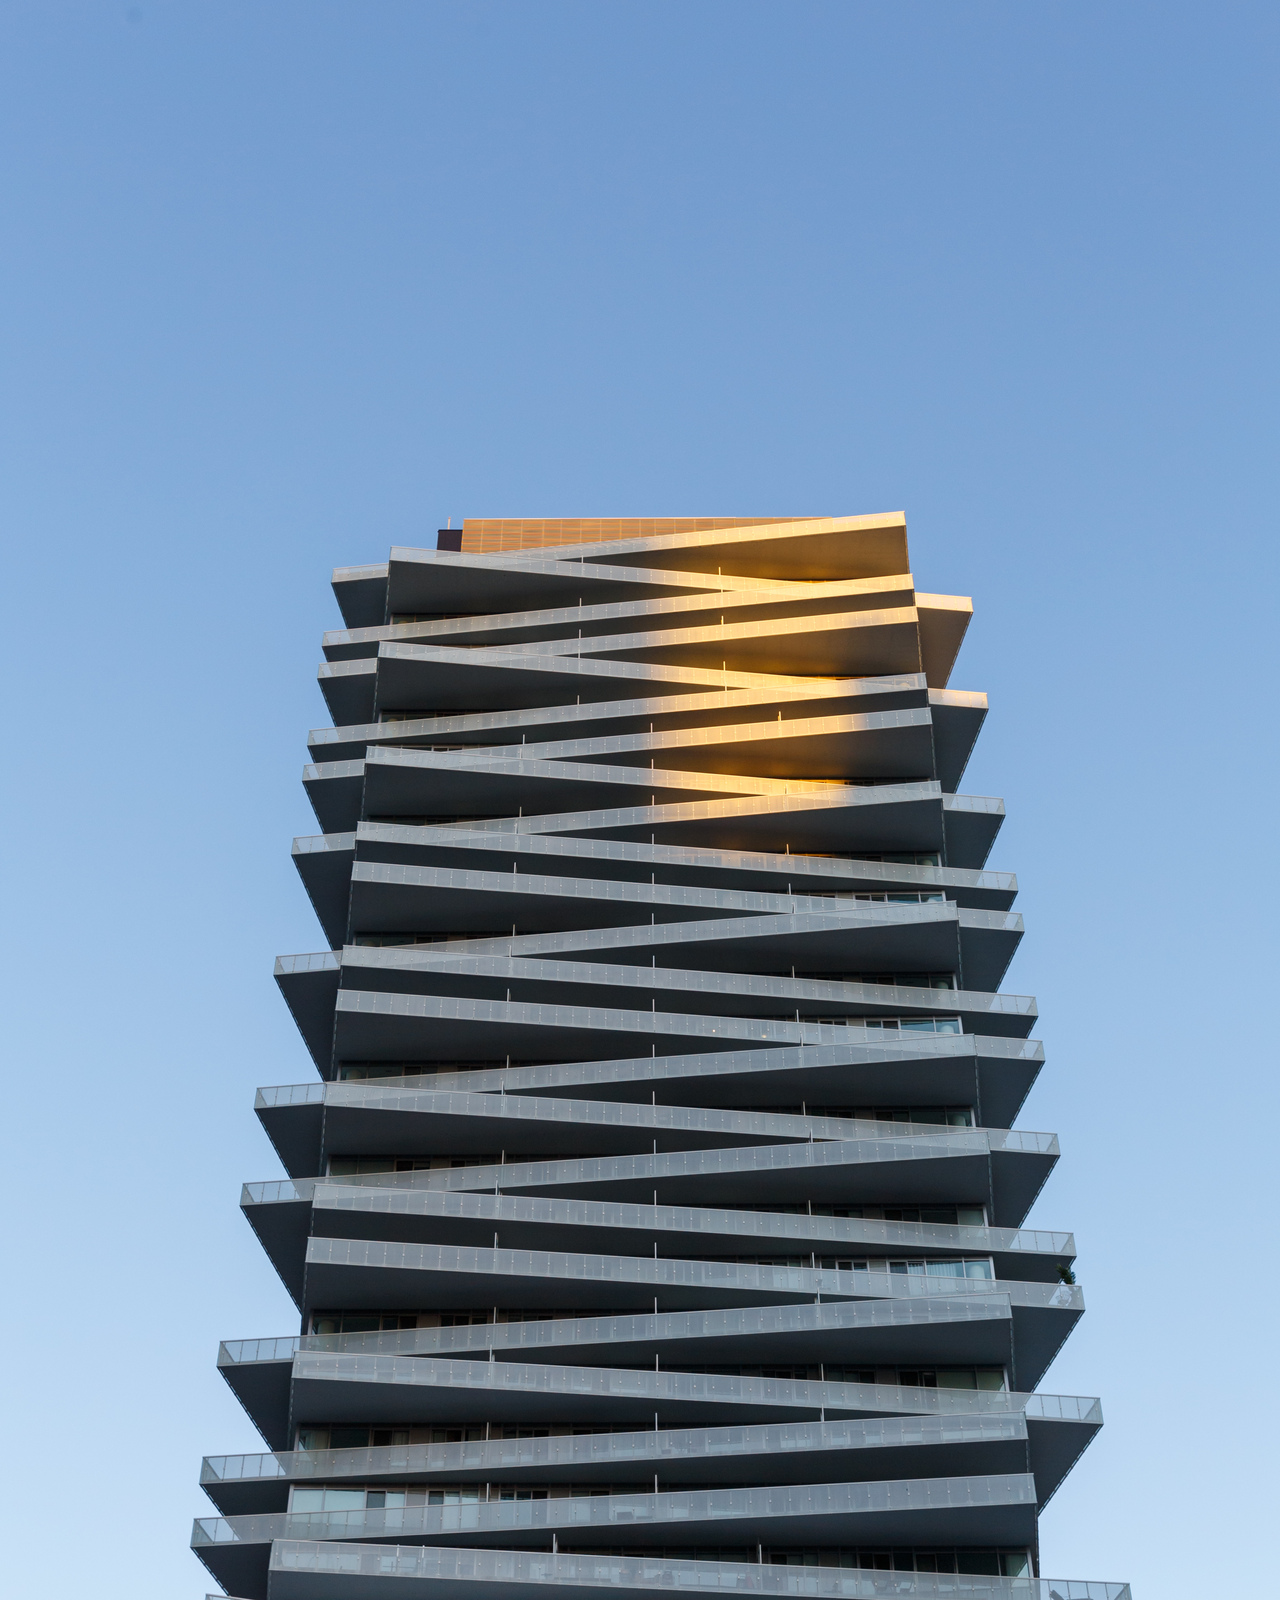 Daily Photo, Toronto, Tower at Pier 27, Yonge, Queens Quay